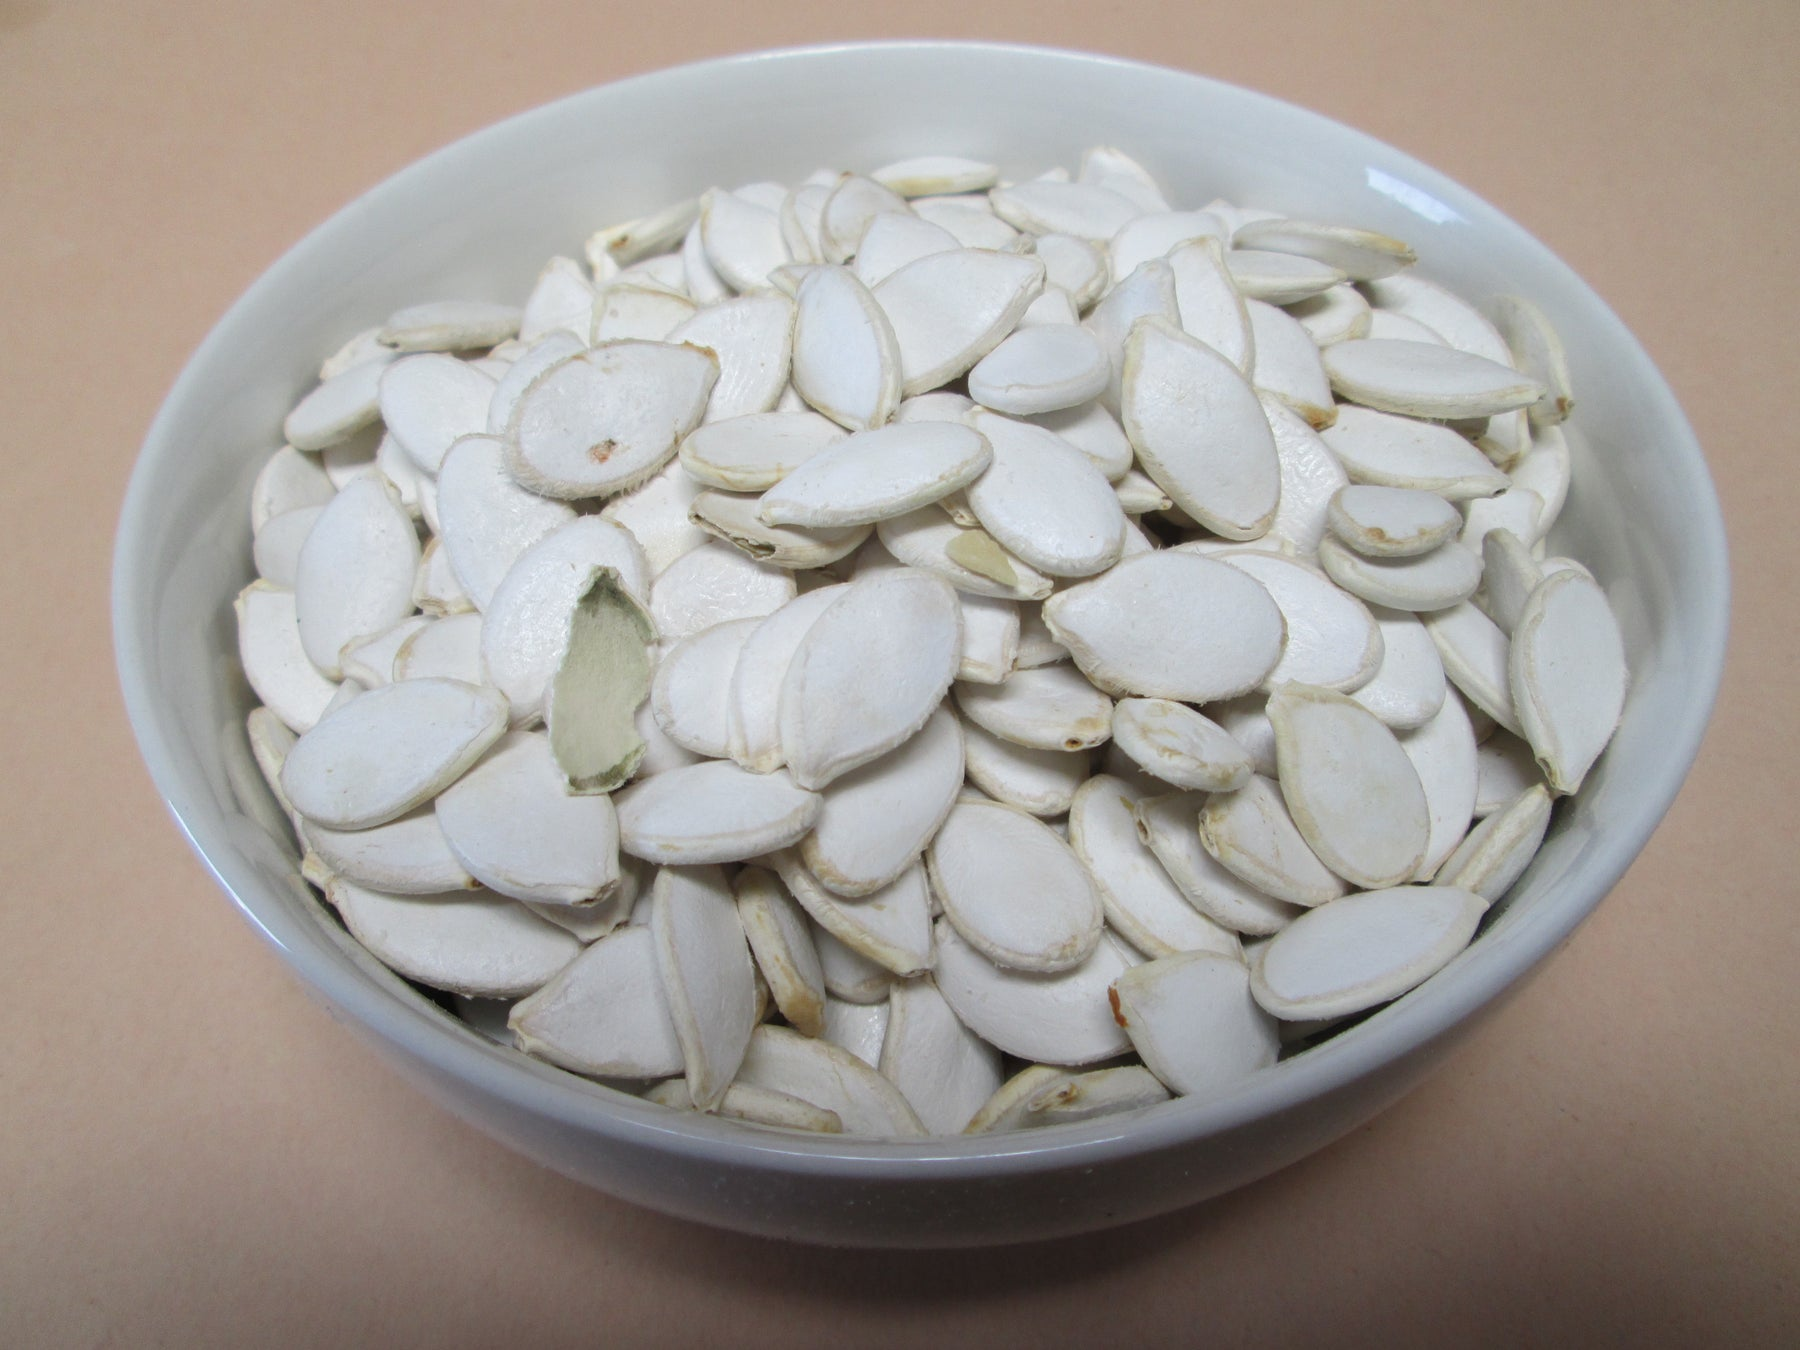 Roasted & Salted Pumpkin Seeds (Squash), 25 lbs / case